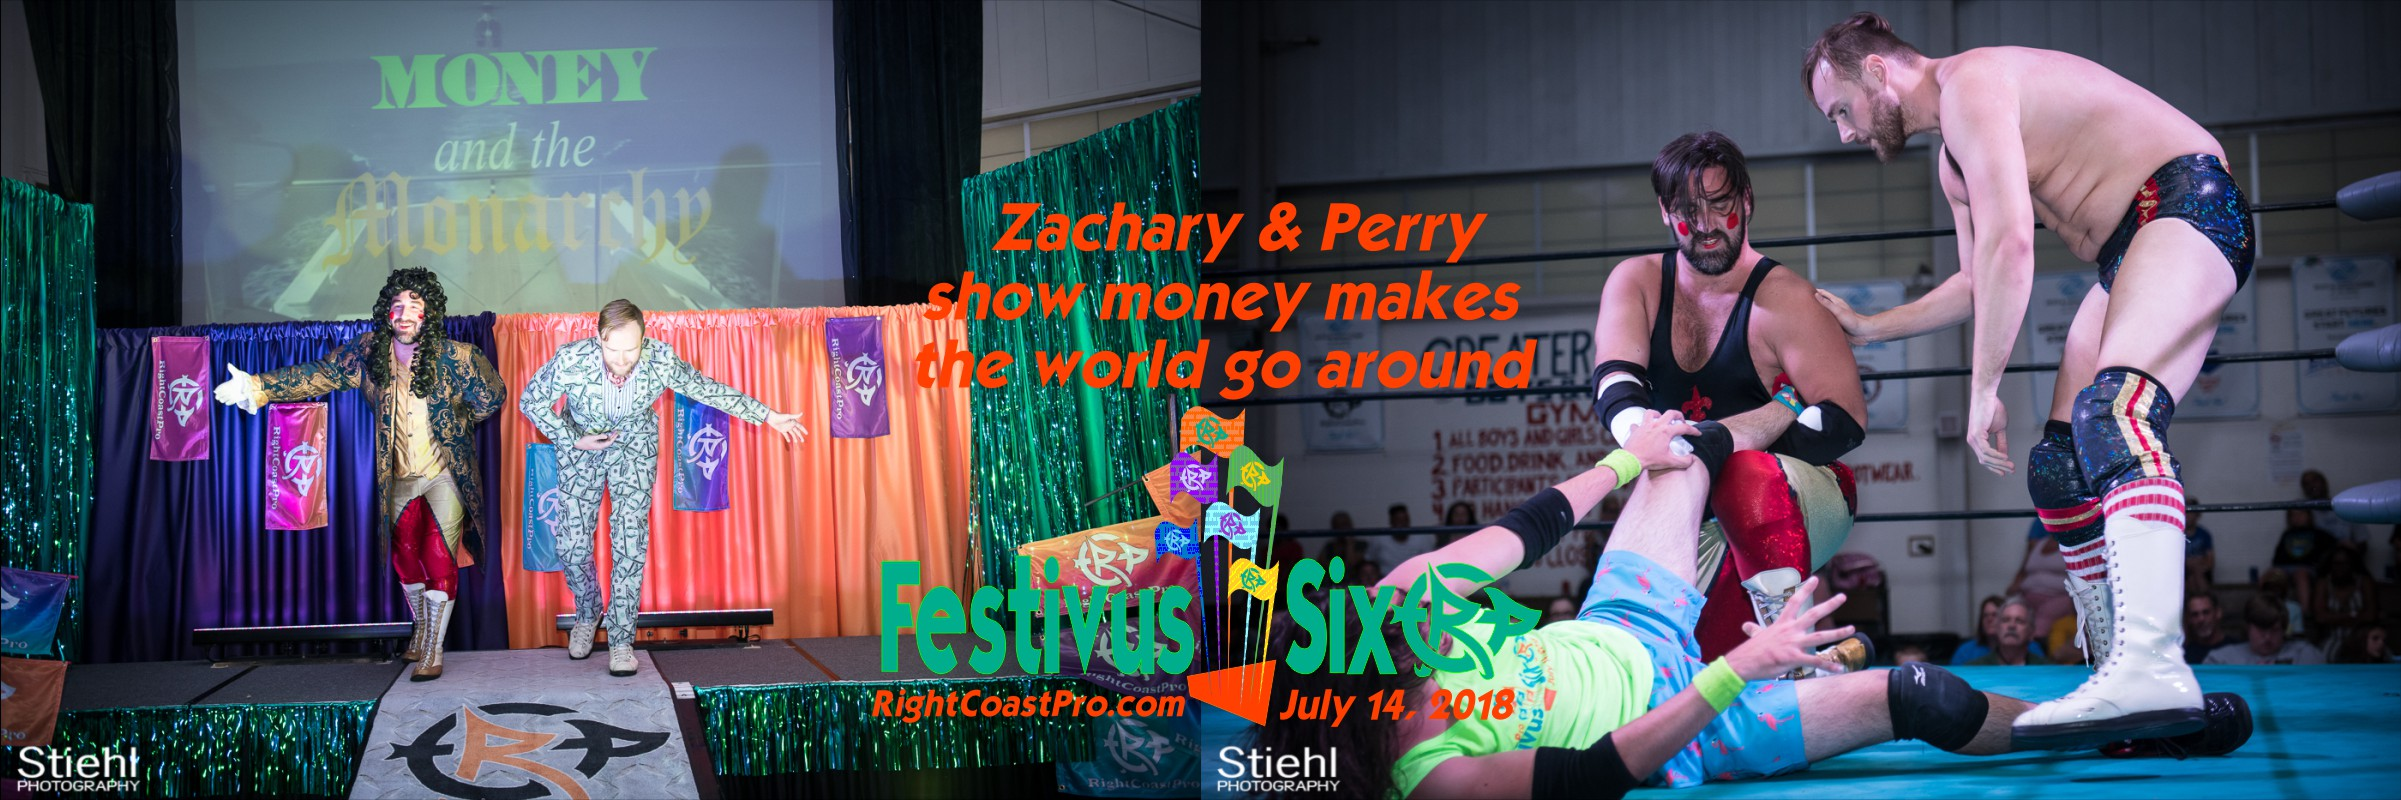 Banner Zachary Perry RightCoastPro Wrestling Delaware Festivus Six